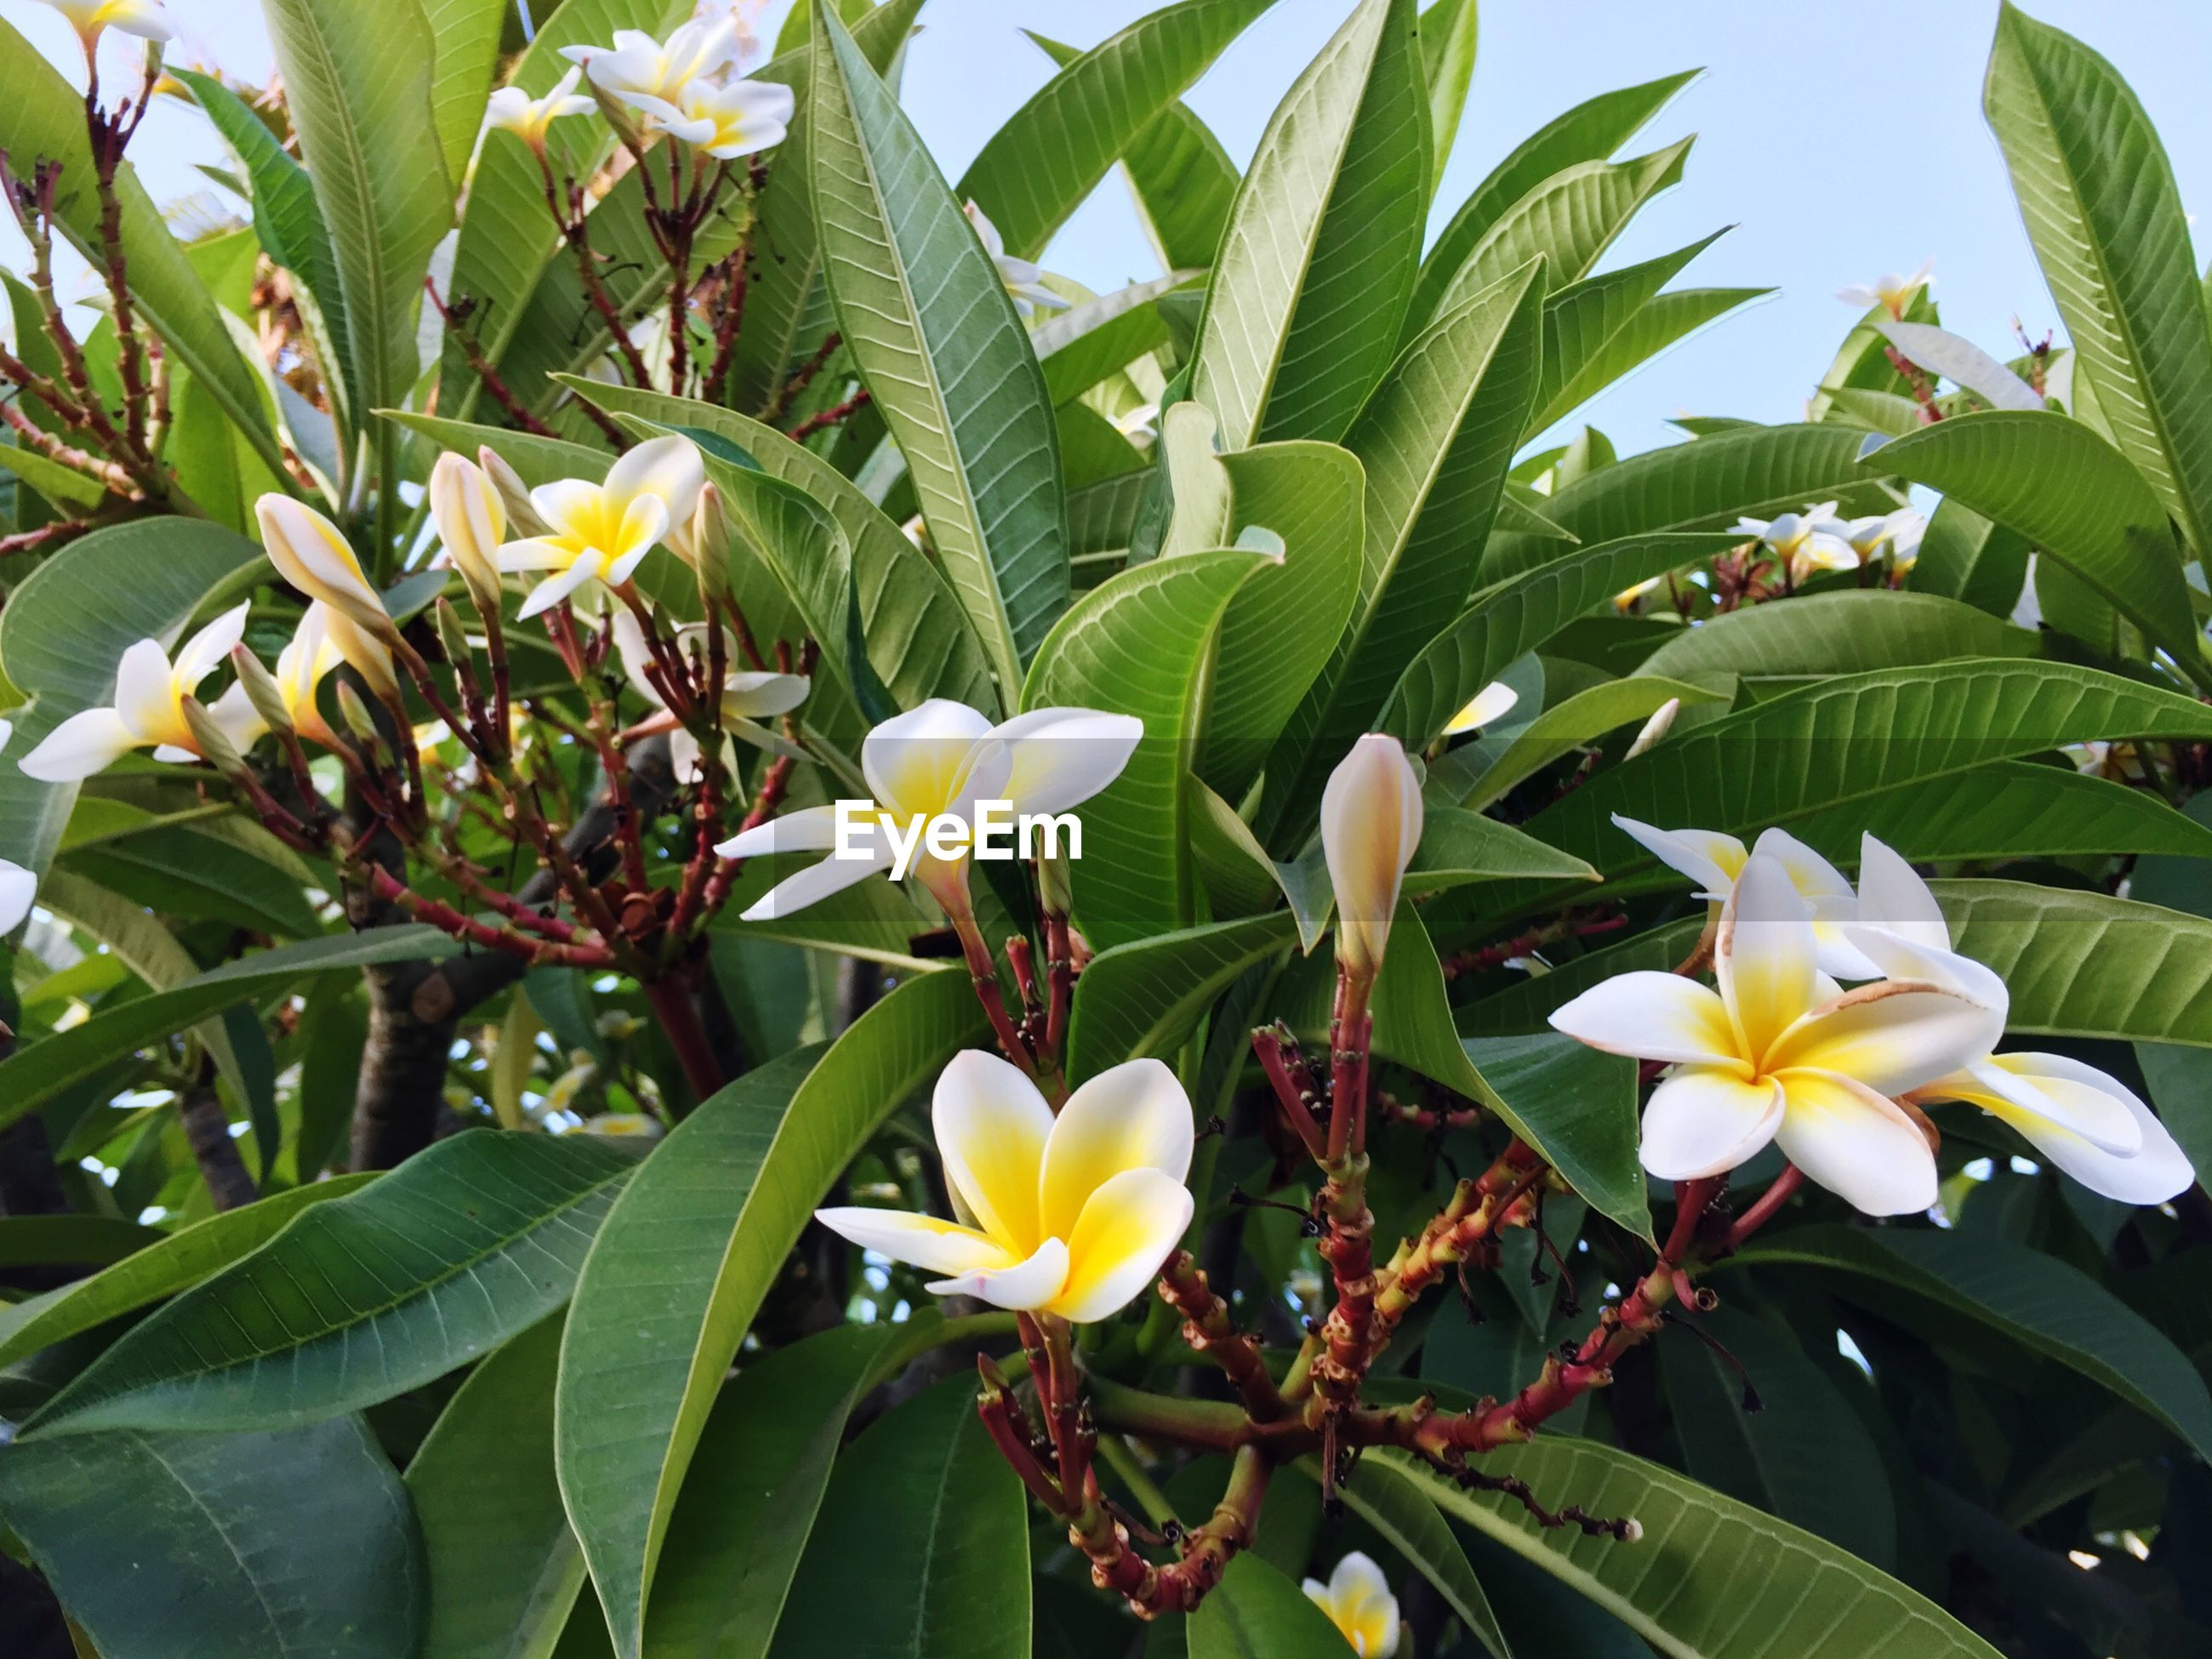 Low angle view of frangipanis blooming on plant